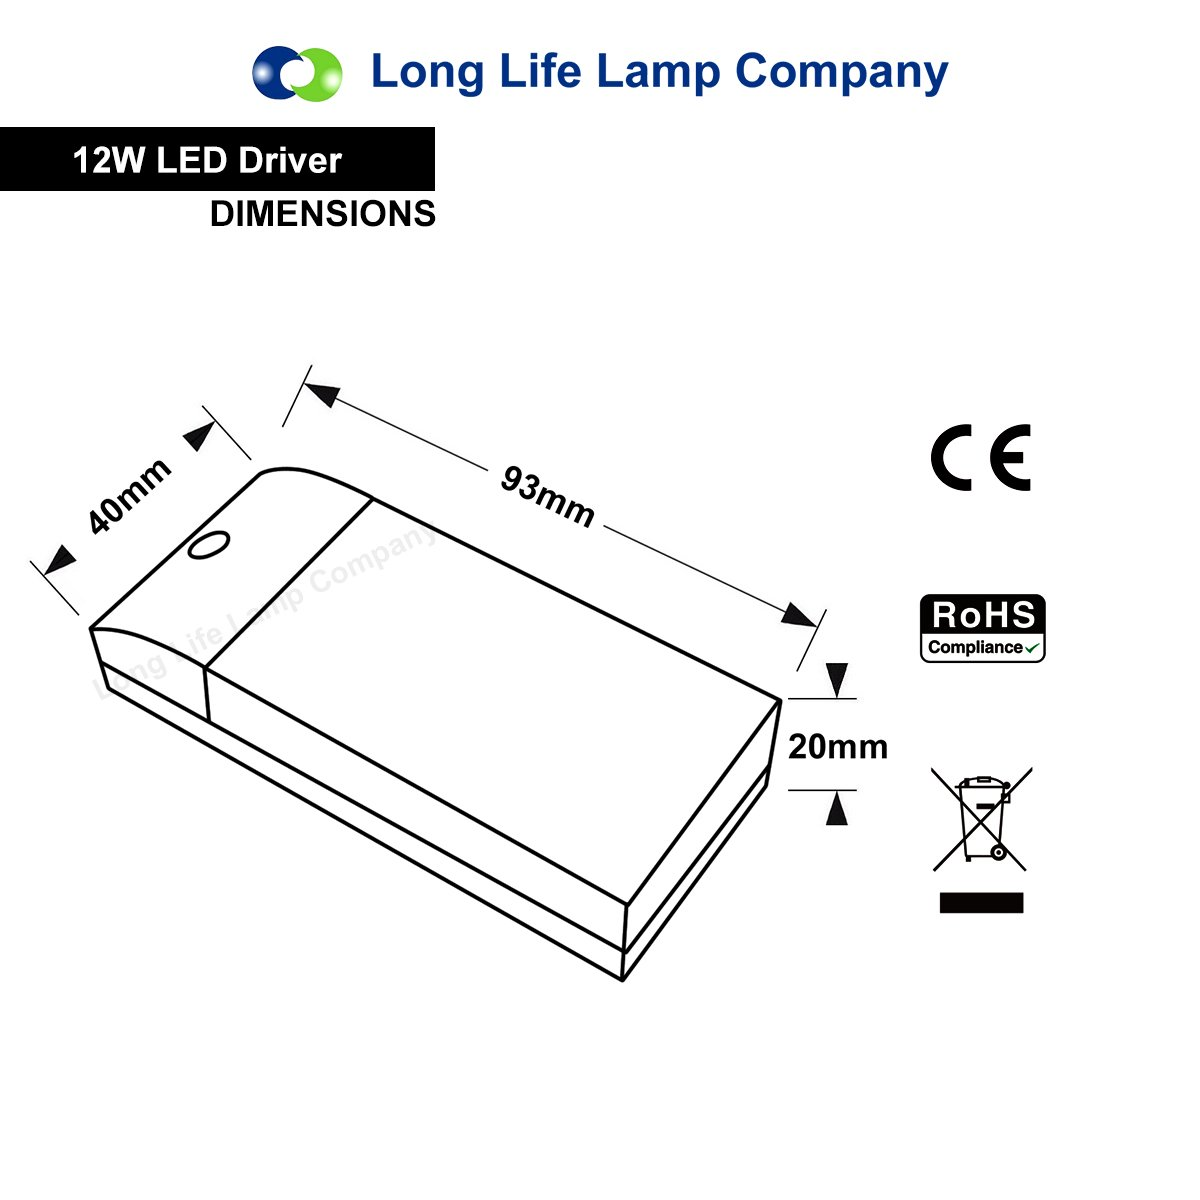 12w Led Driver Transformer For Mr16 Mr11 G4 Light Bulb By Long Together With 10 Watt Circuit On High Current Life Lamp Company Diy Tools